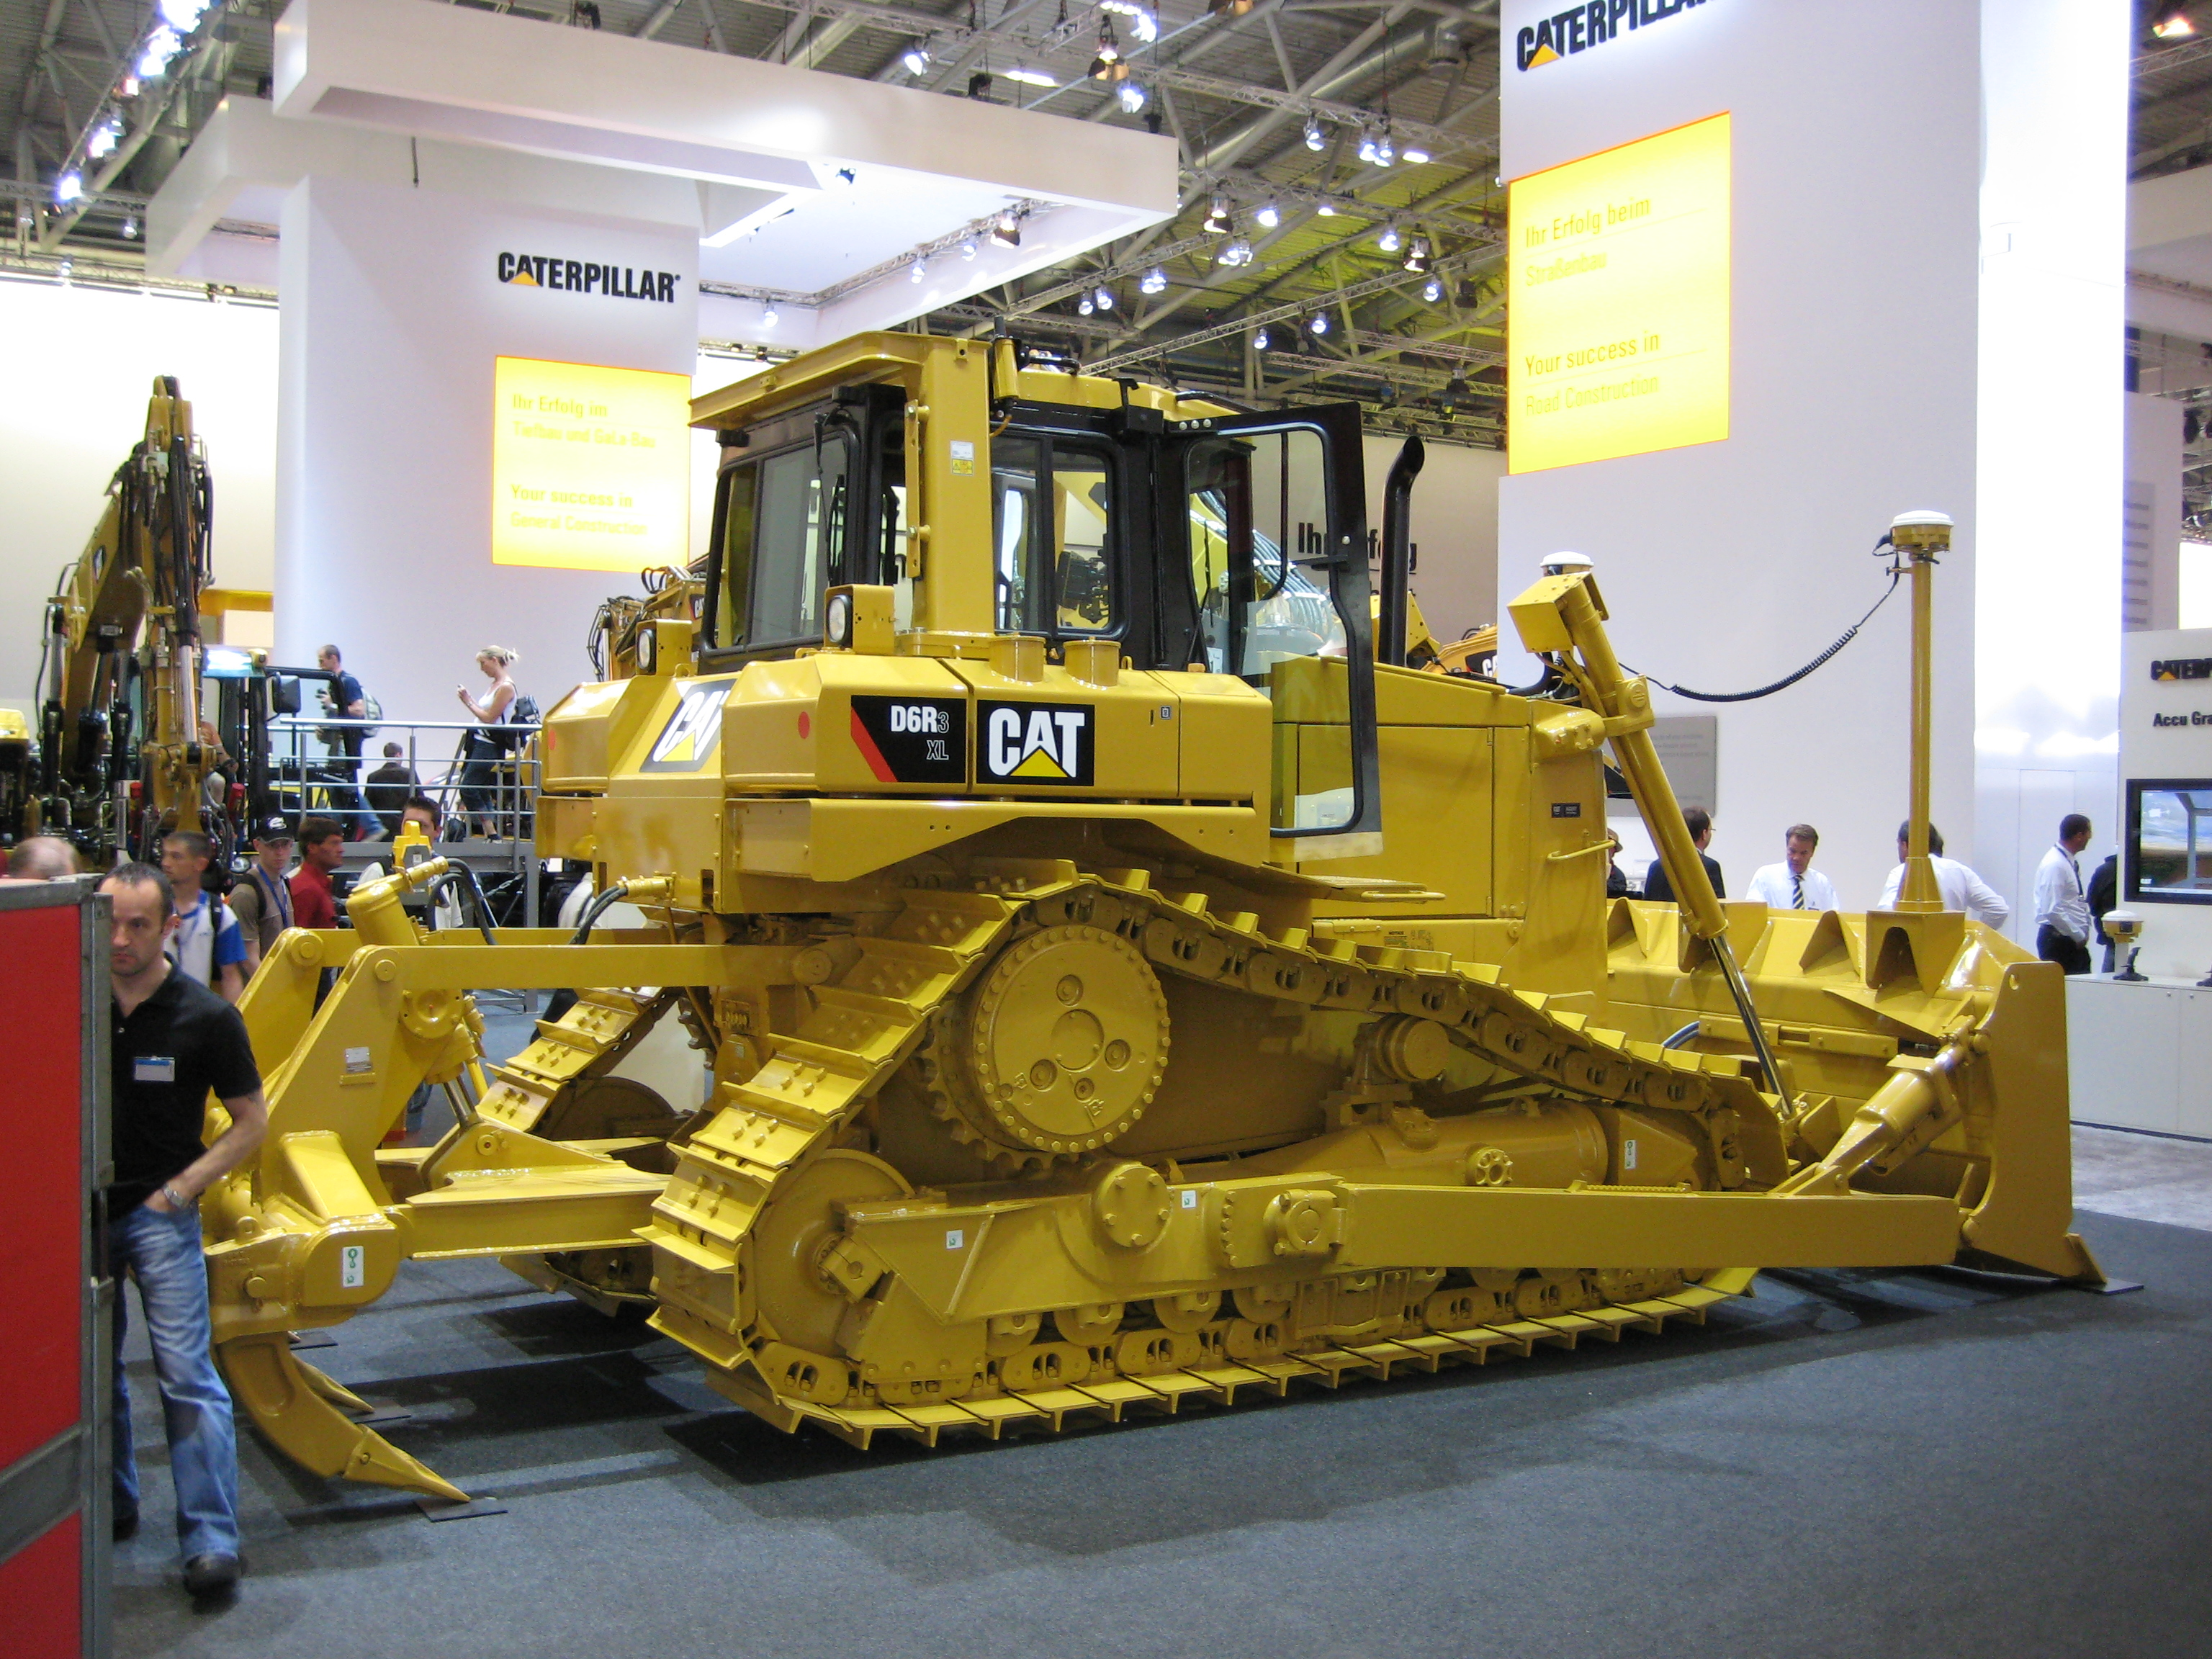 Caterpillar 120 photo - 1